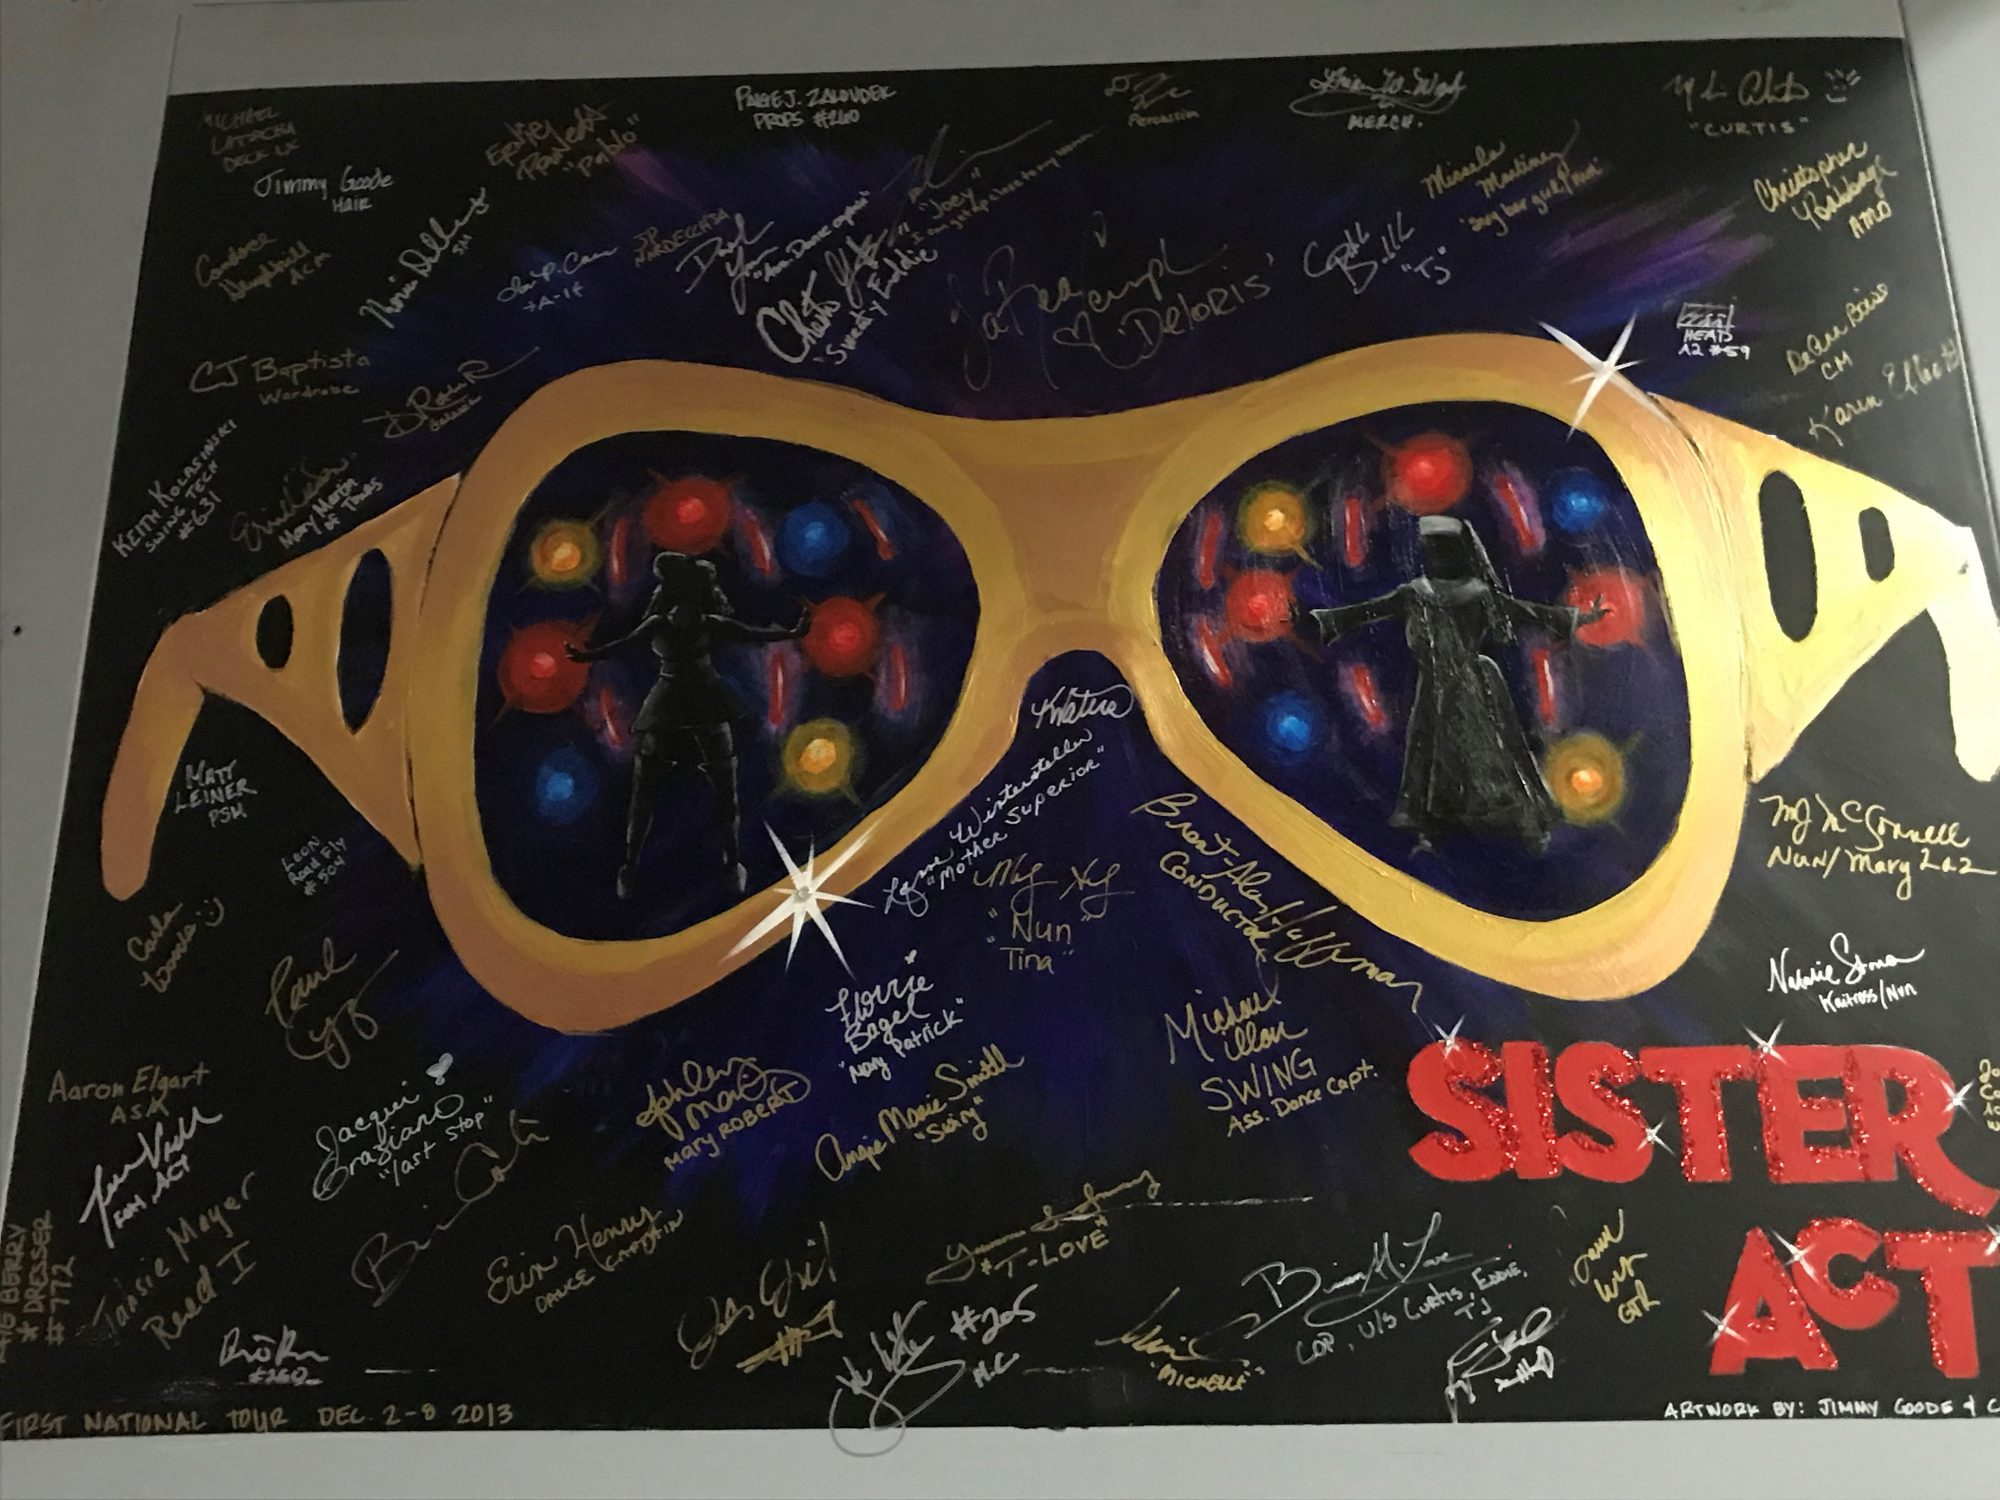 Sister Mary Clarence looks fabulous through those Elvis glasses!